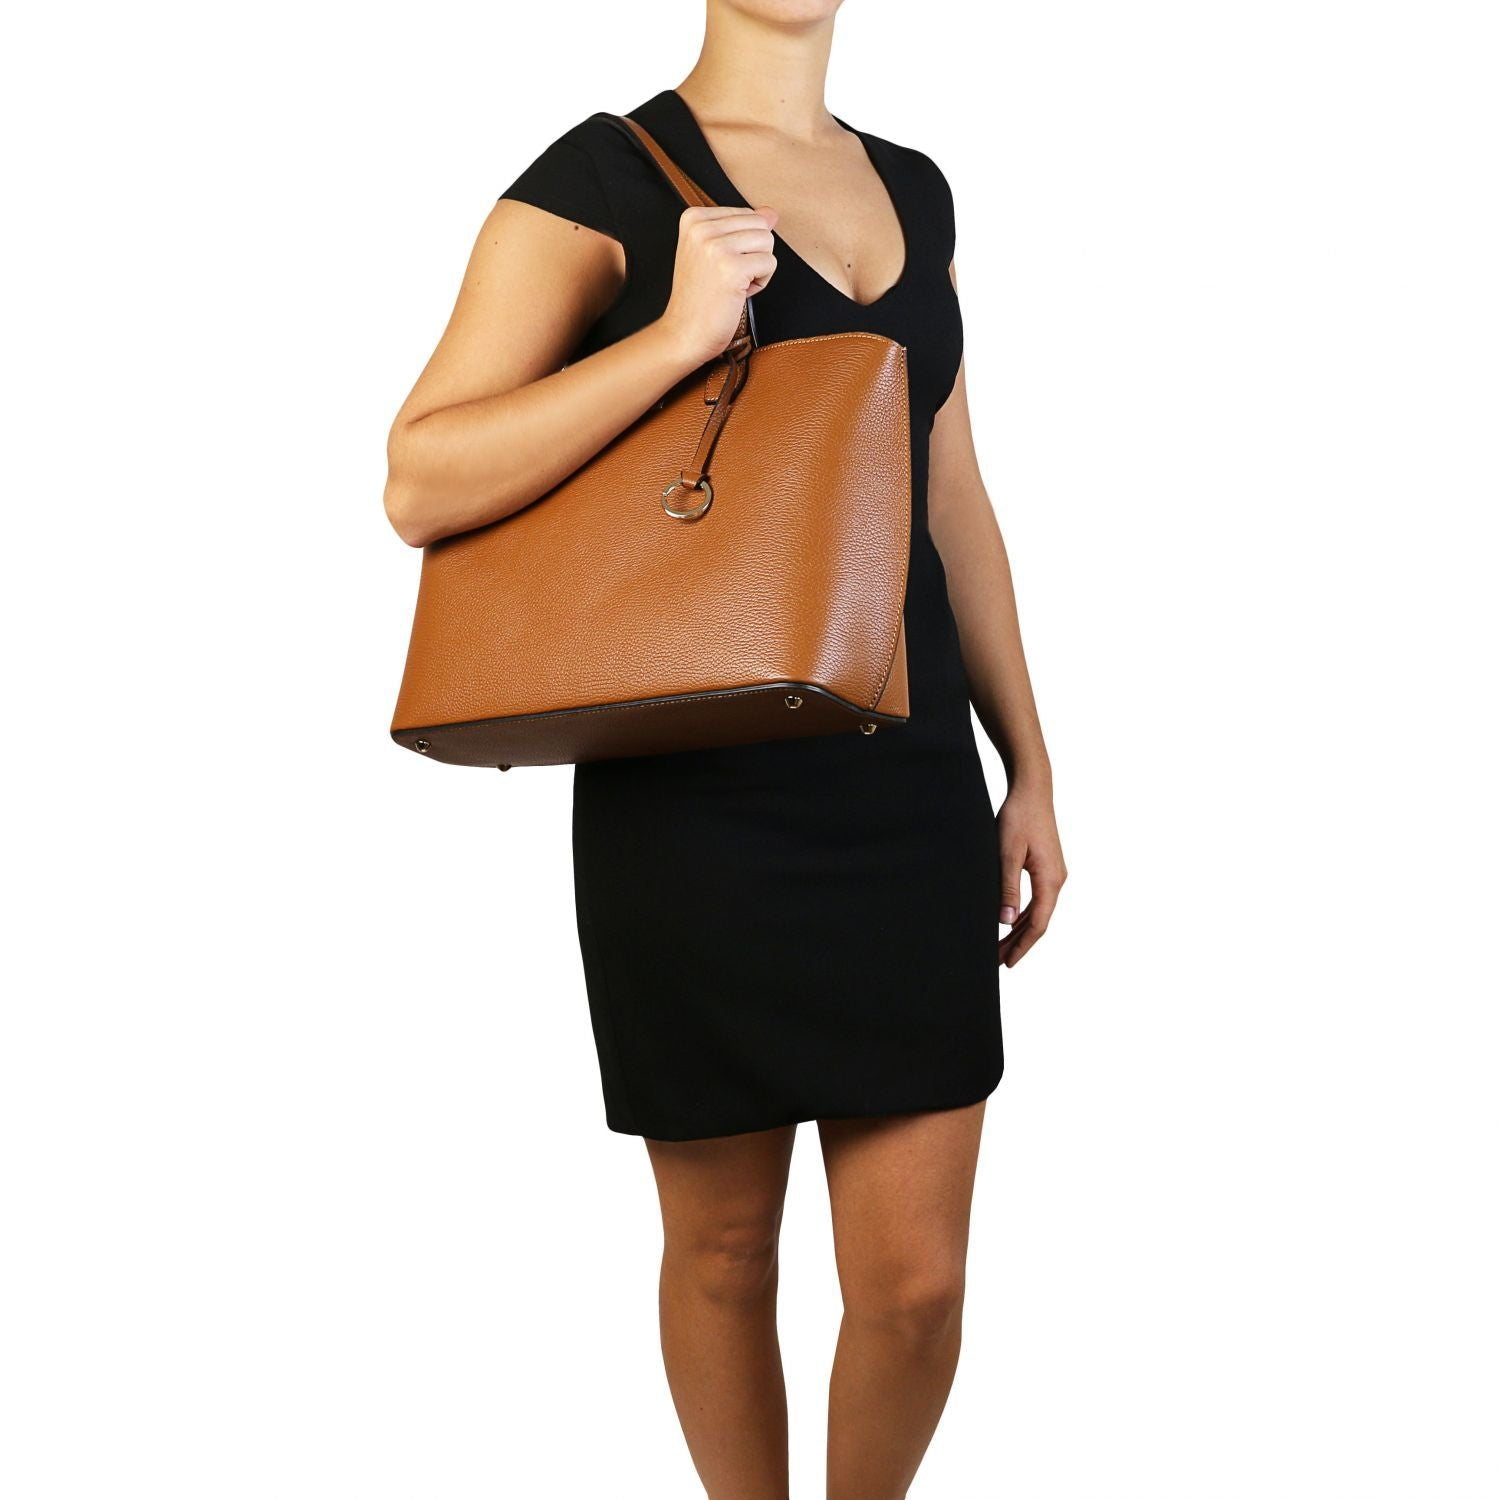 TL Bag - Soft leather tote bag (TL141828) - Leather shoulder bags | DILUSSOBAGS